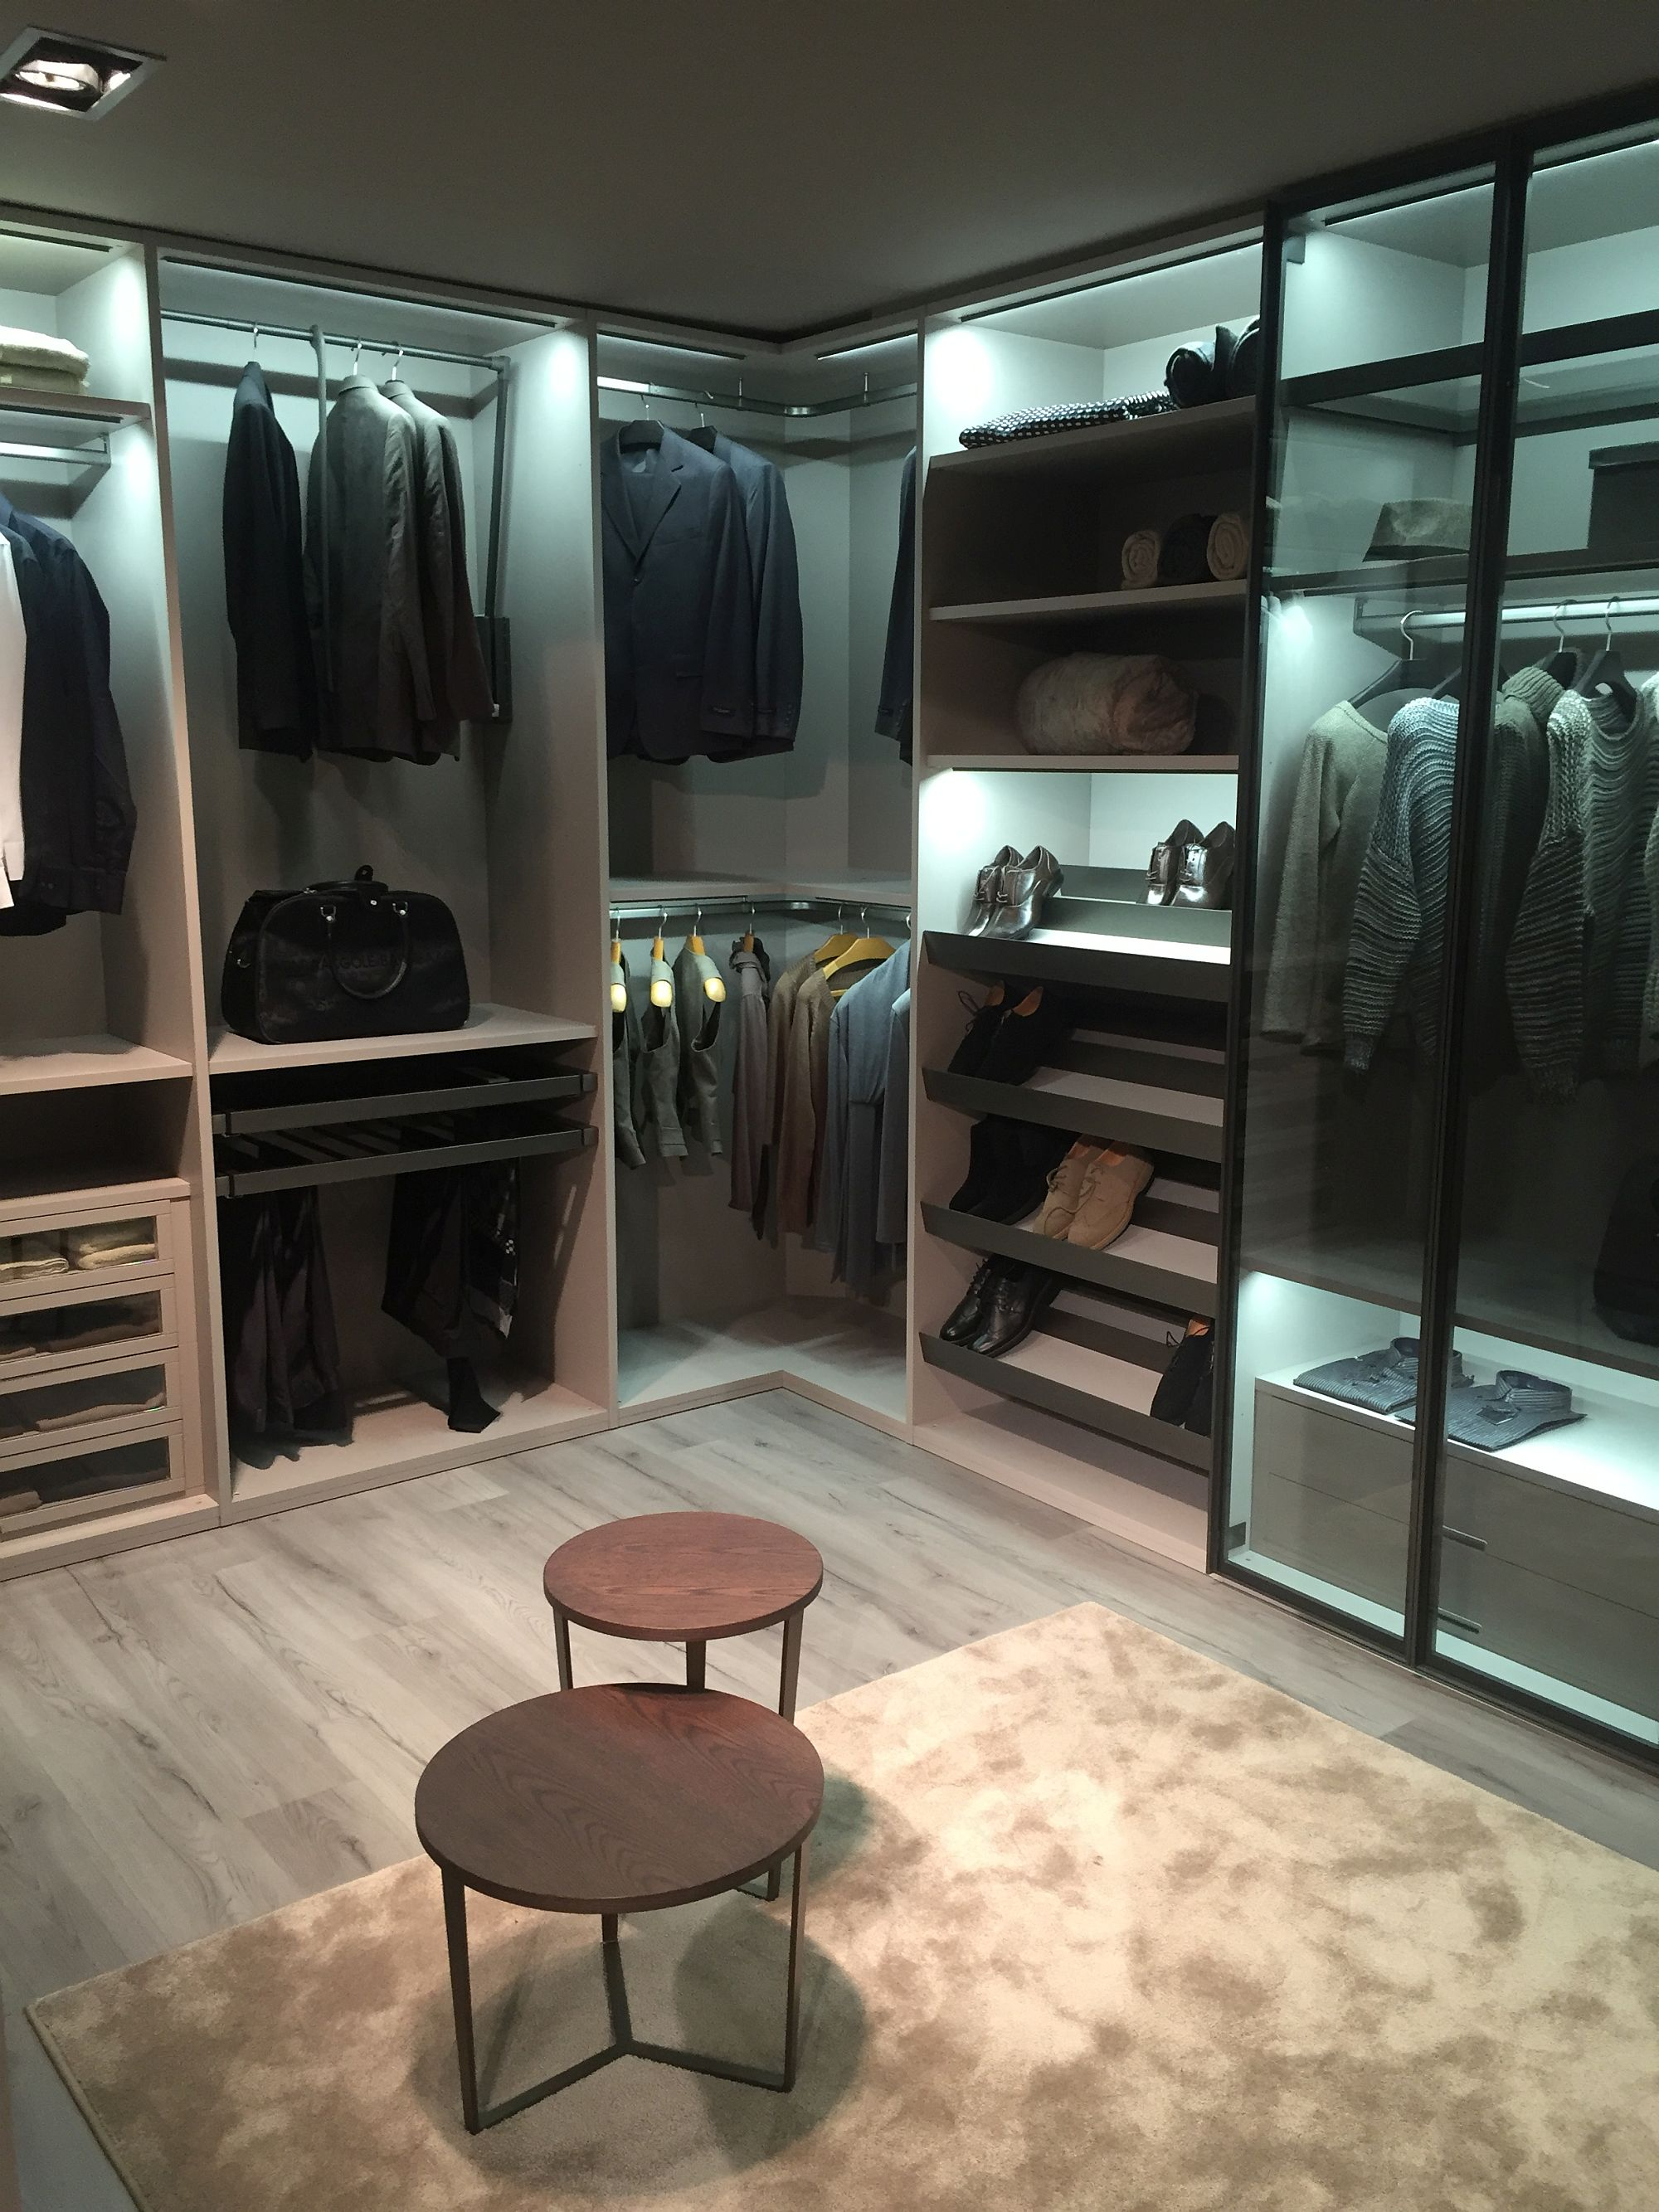 Walk-in wardrobe provide plenty of space for your entire collection